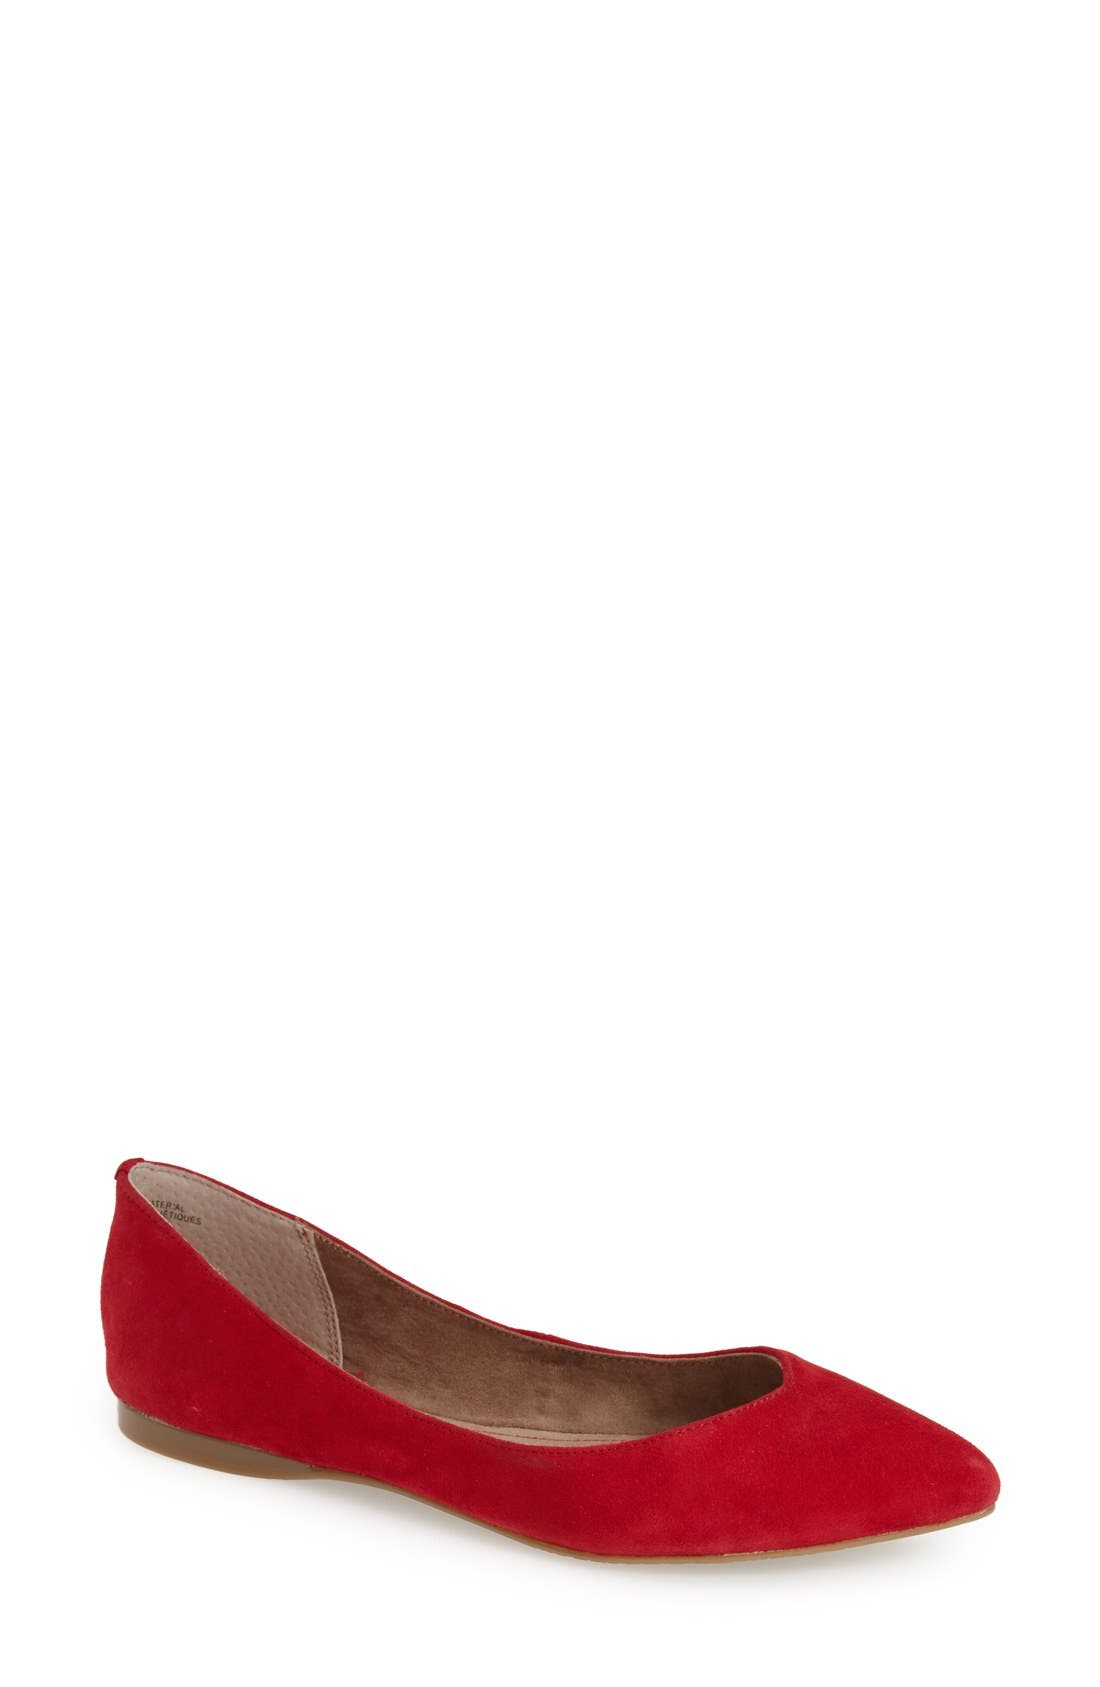 BP. Moveover Pointy Toe Leather Flat